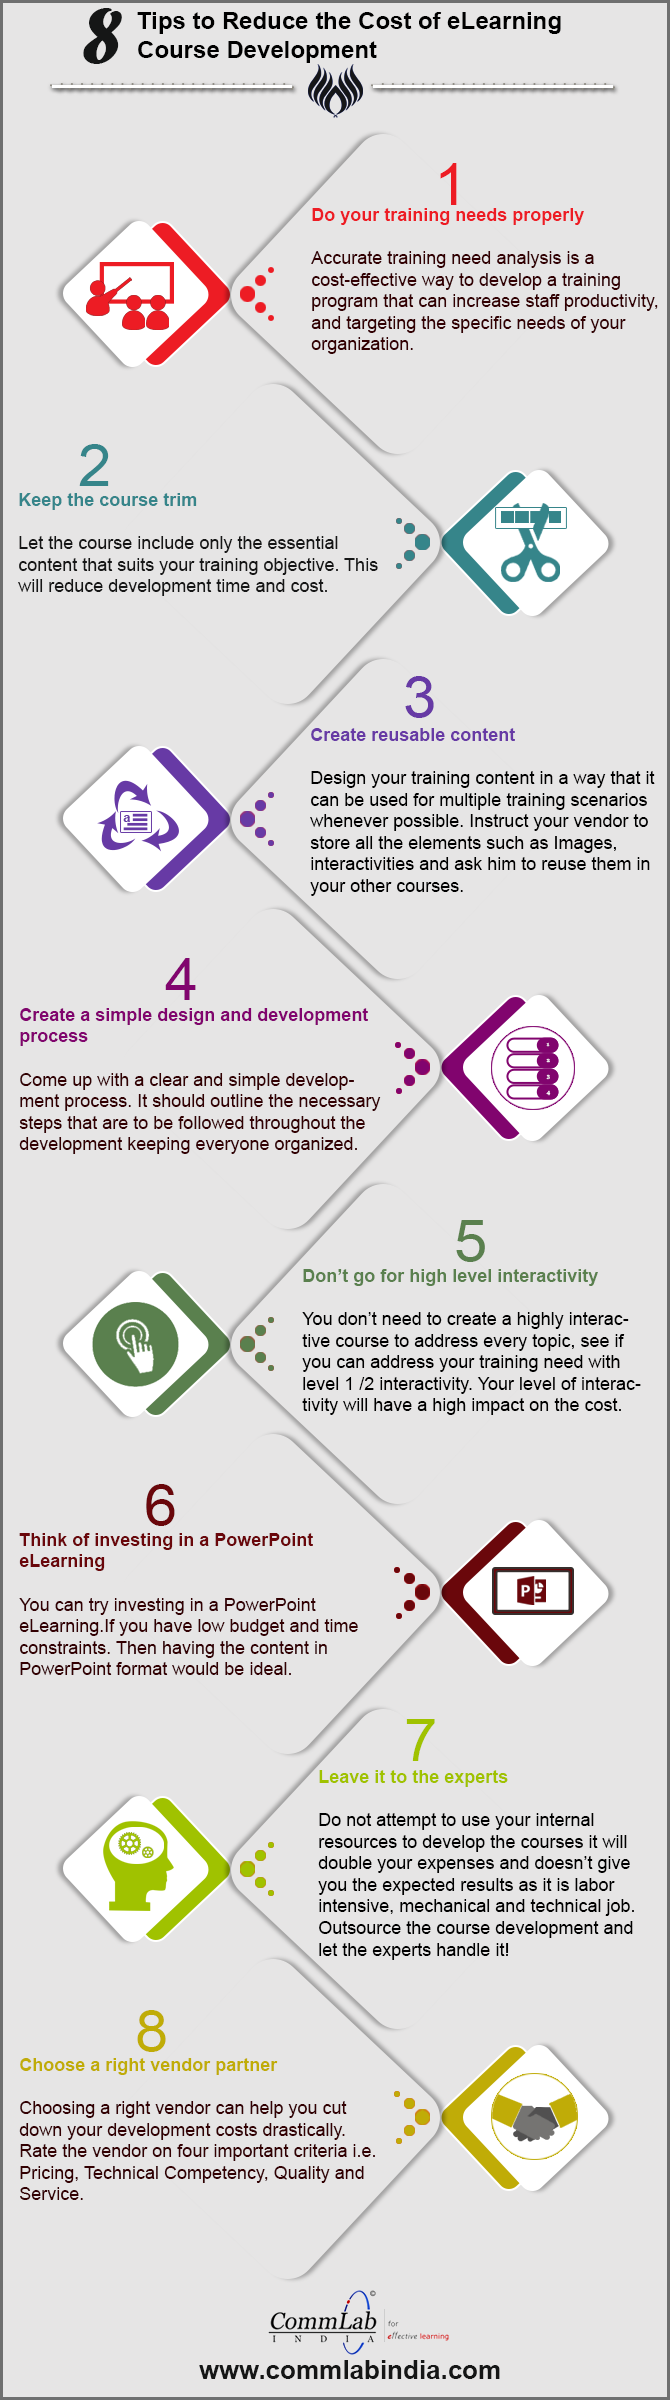 How to Reduce E-learning Development Costs - An Infographic